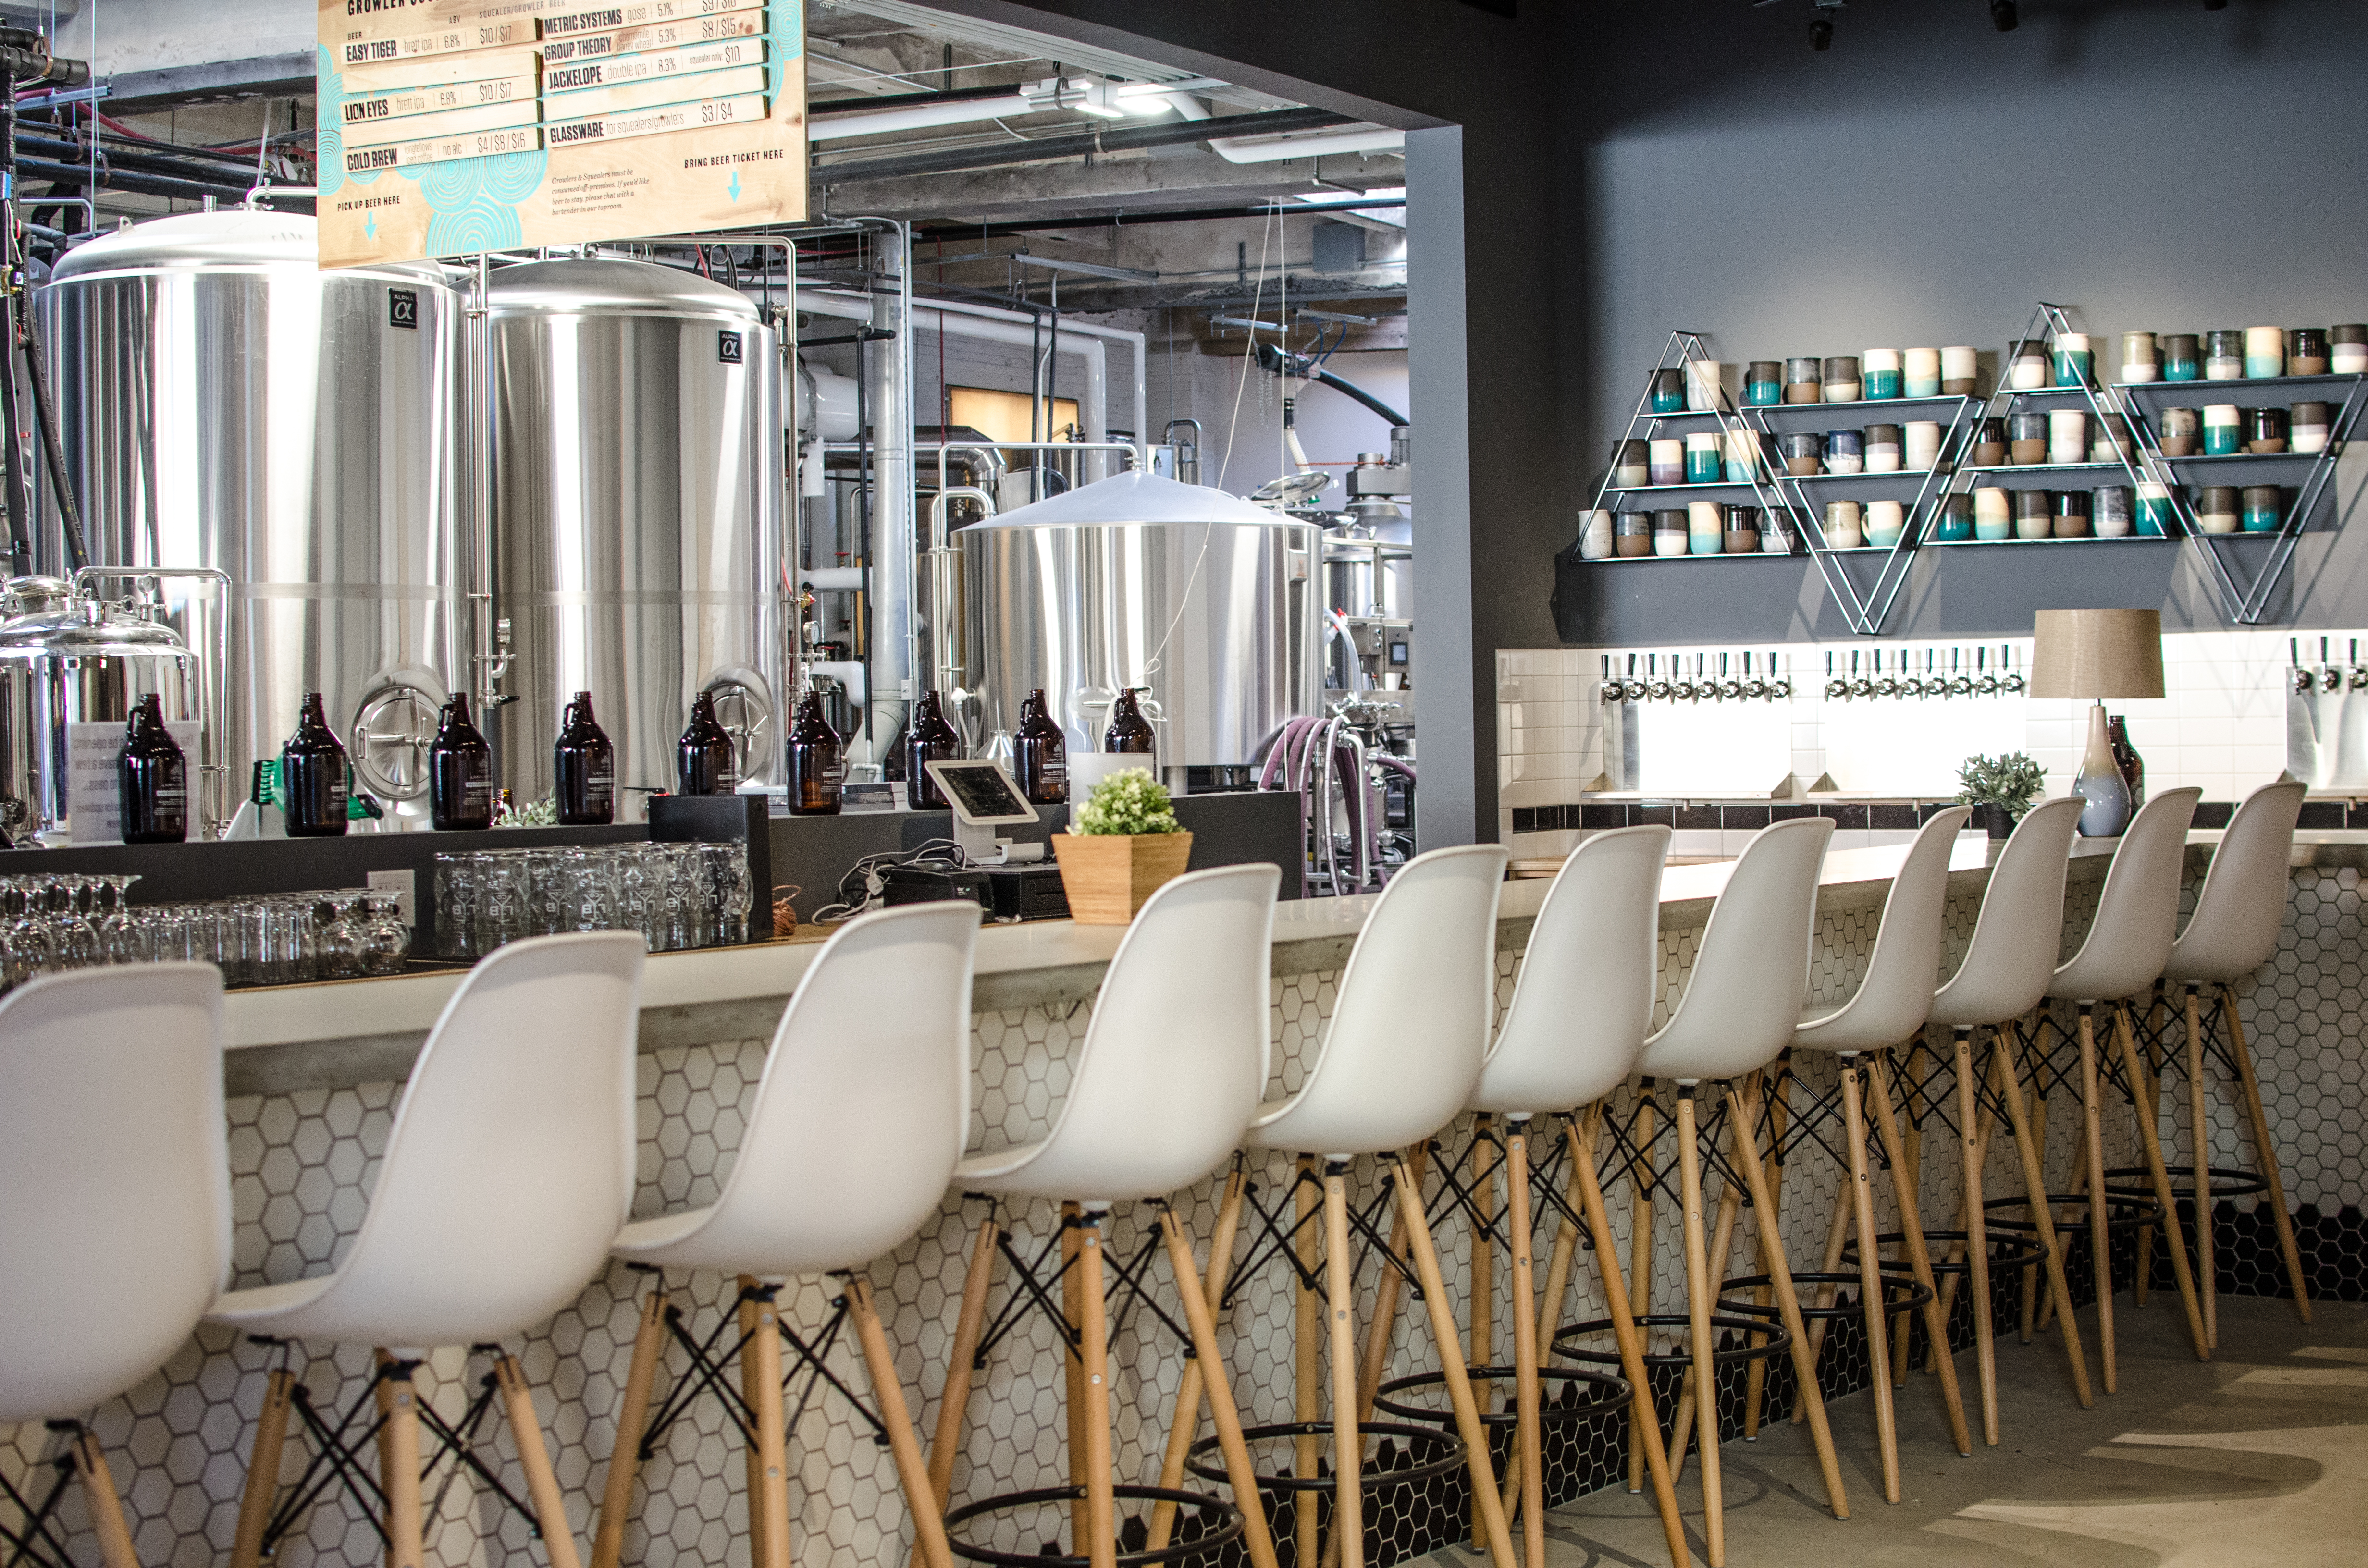 White bar stools line a concrete bar with white tiling that opens to brewing space with silver tanks